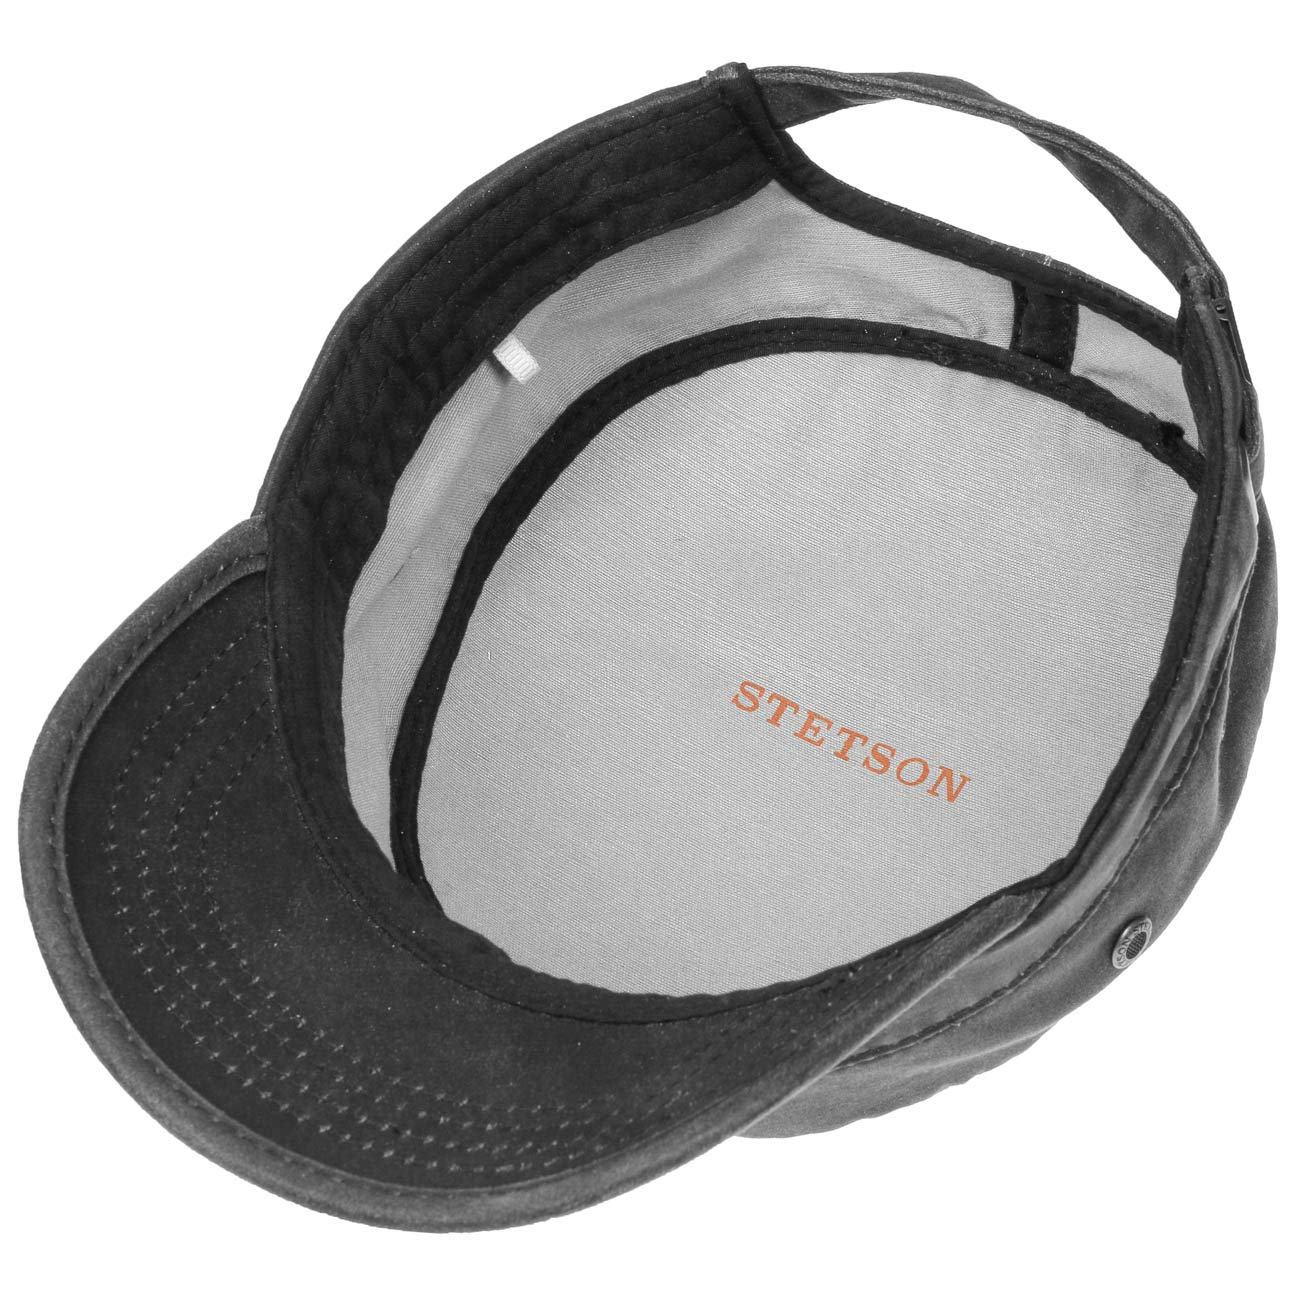 a3905696 Stetson Datto Men's Army Cap | Water-Repellent Cotton Cap | Summer/Winter | Army  Cap with UV 40+ Sun Protection | Washed Leather Look (Oilskin) | Urban Cap:  ...